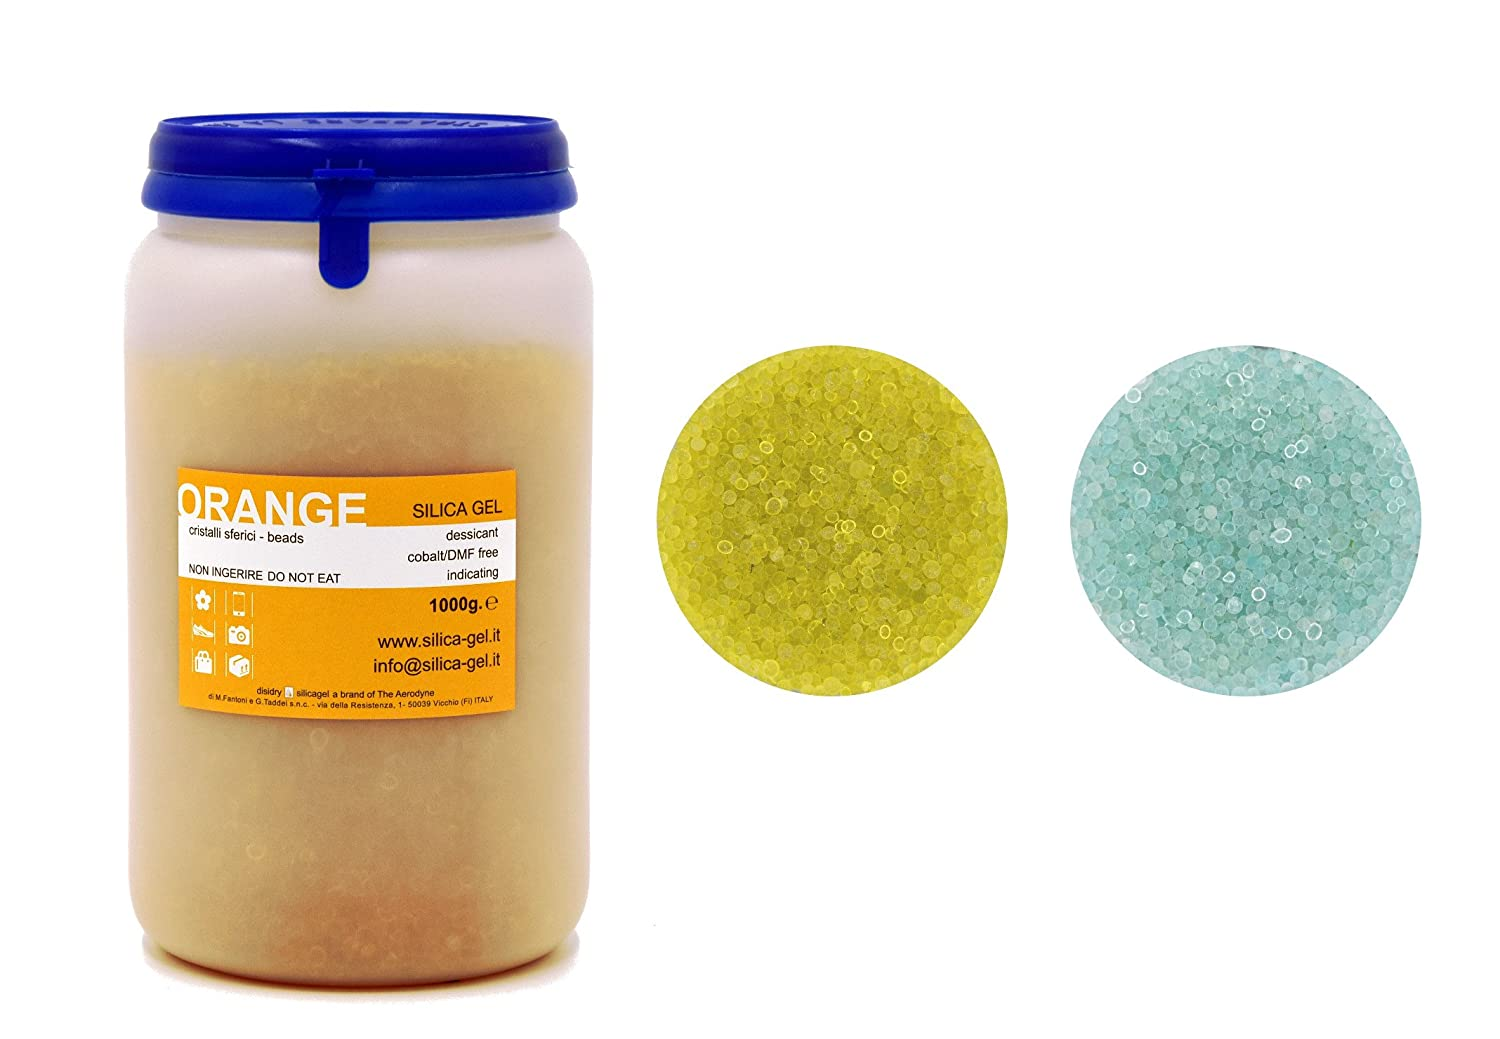 Silica Gel Orange with Indicator in Sealed Bottle 1.000 grams - MFD and Cobalt Free DISIDRY